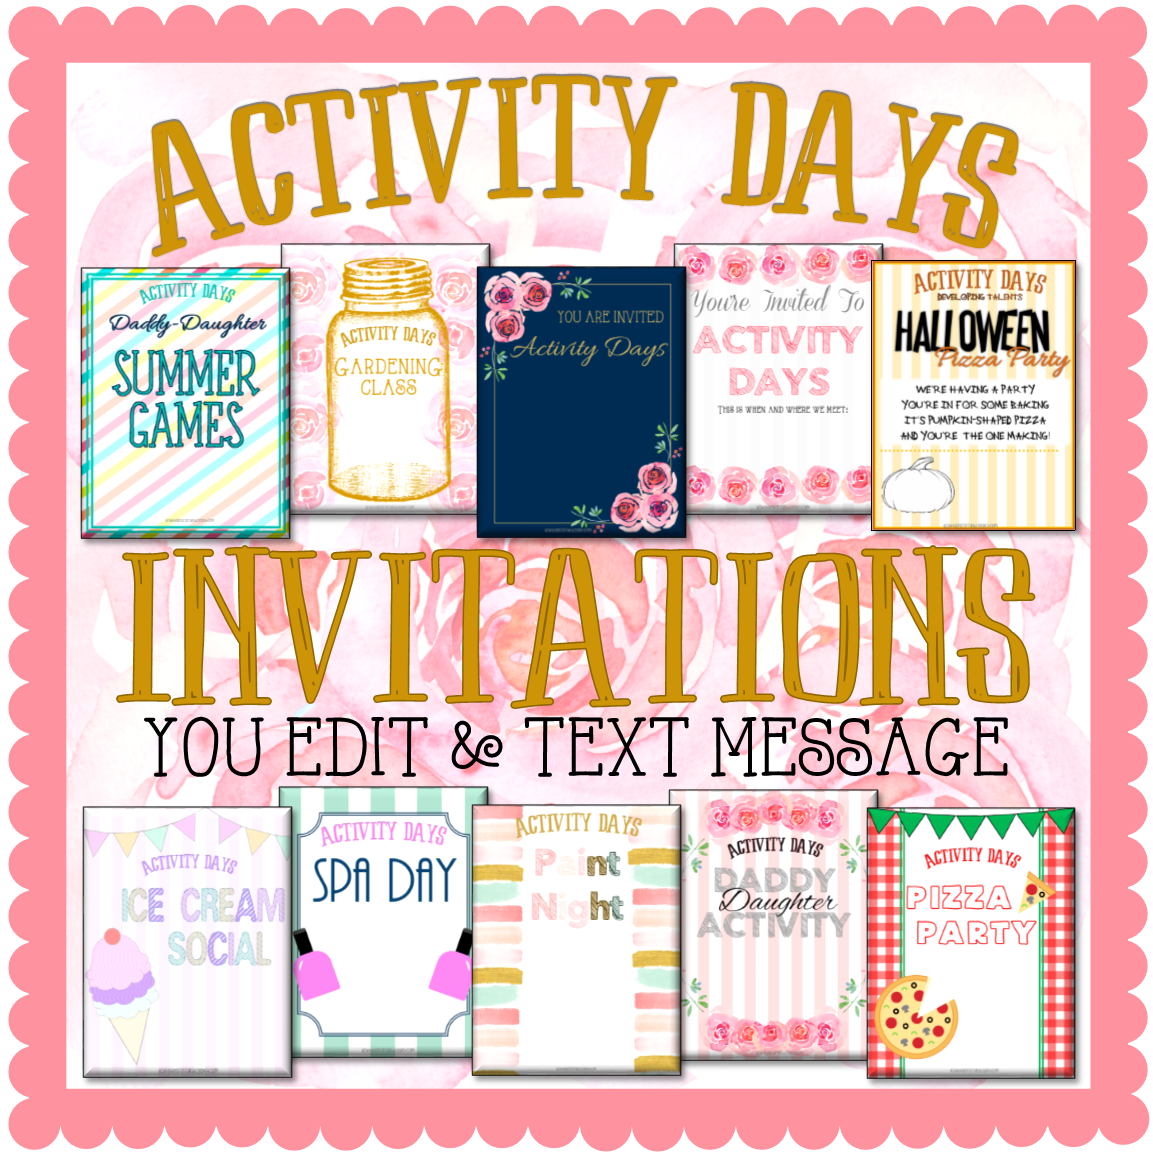 Text Invitations